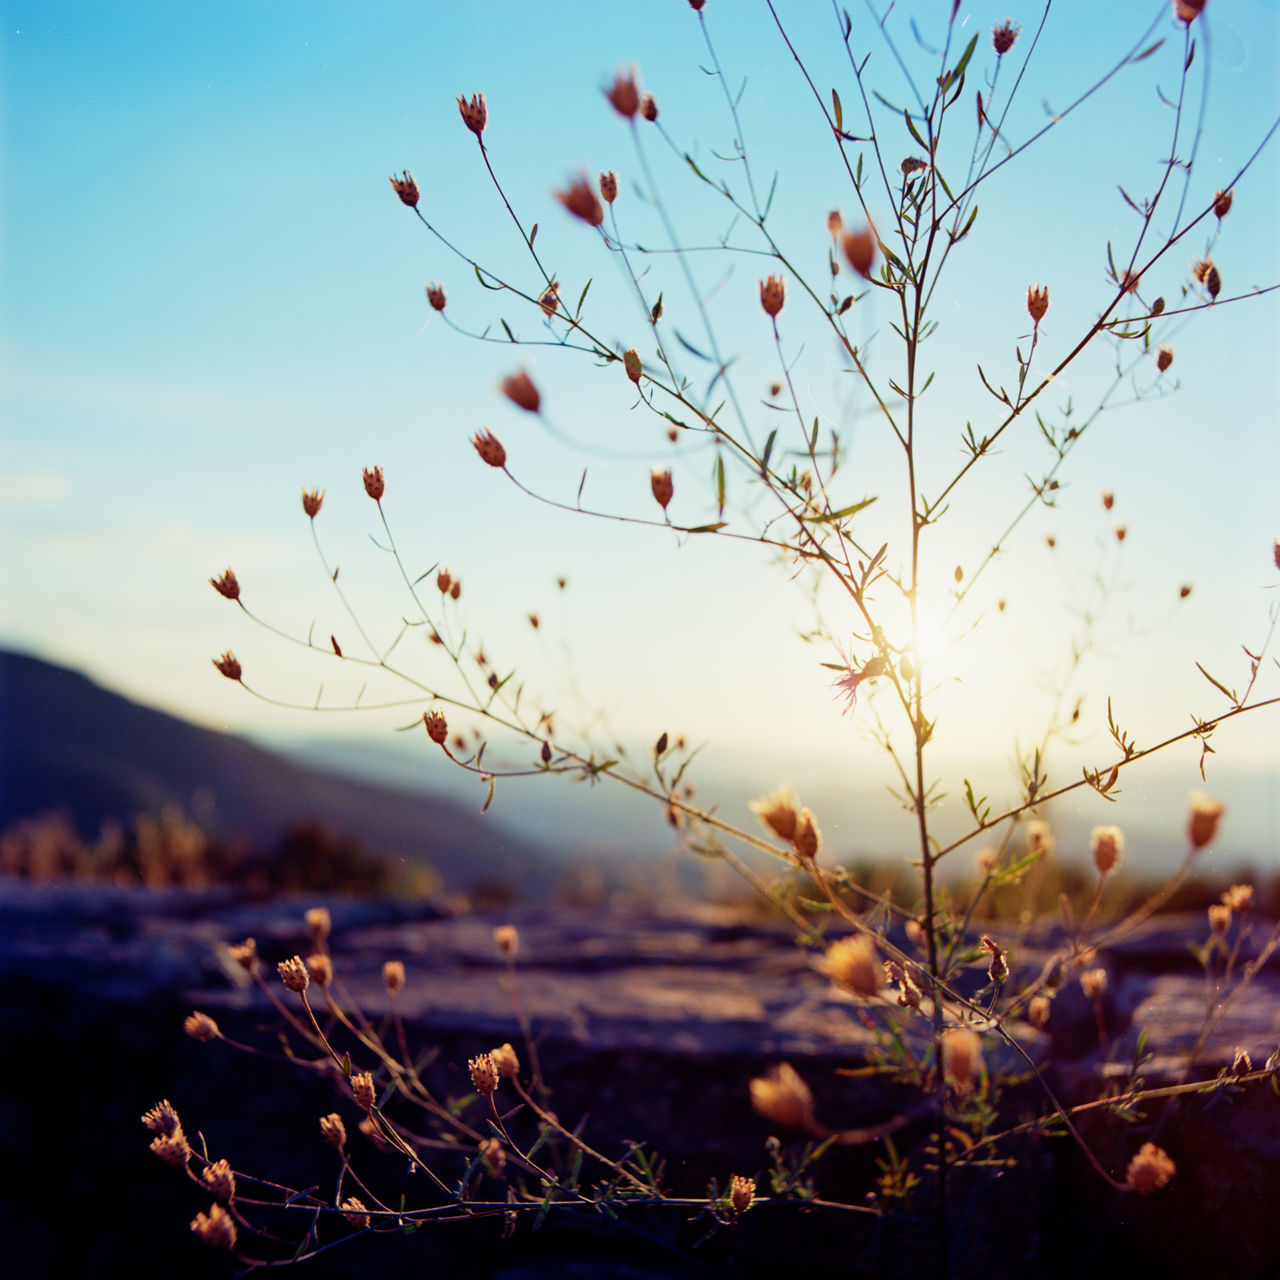 Beauty In Nature Clear Sky Close-up Colorful Day Flowers Freshness Growth Hasselblad Inspiration Mountains Mountains And Sky Nature No People Outdoors Pastel Plant Sky Sunrise Sunset Tranquility